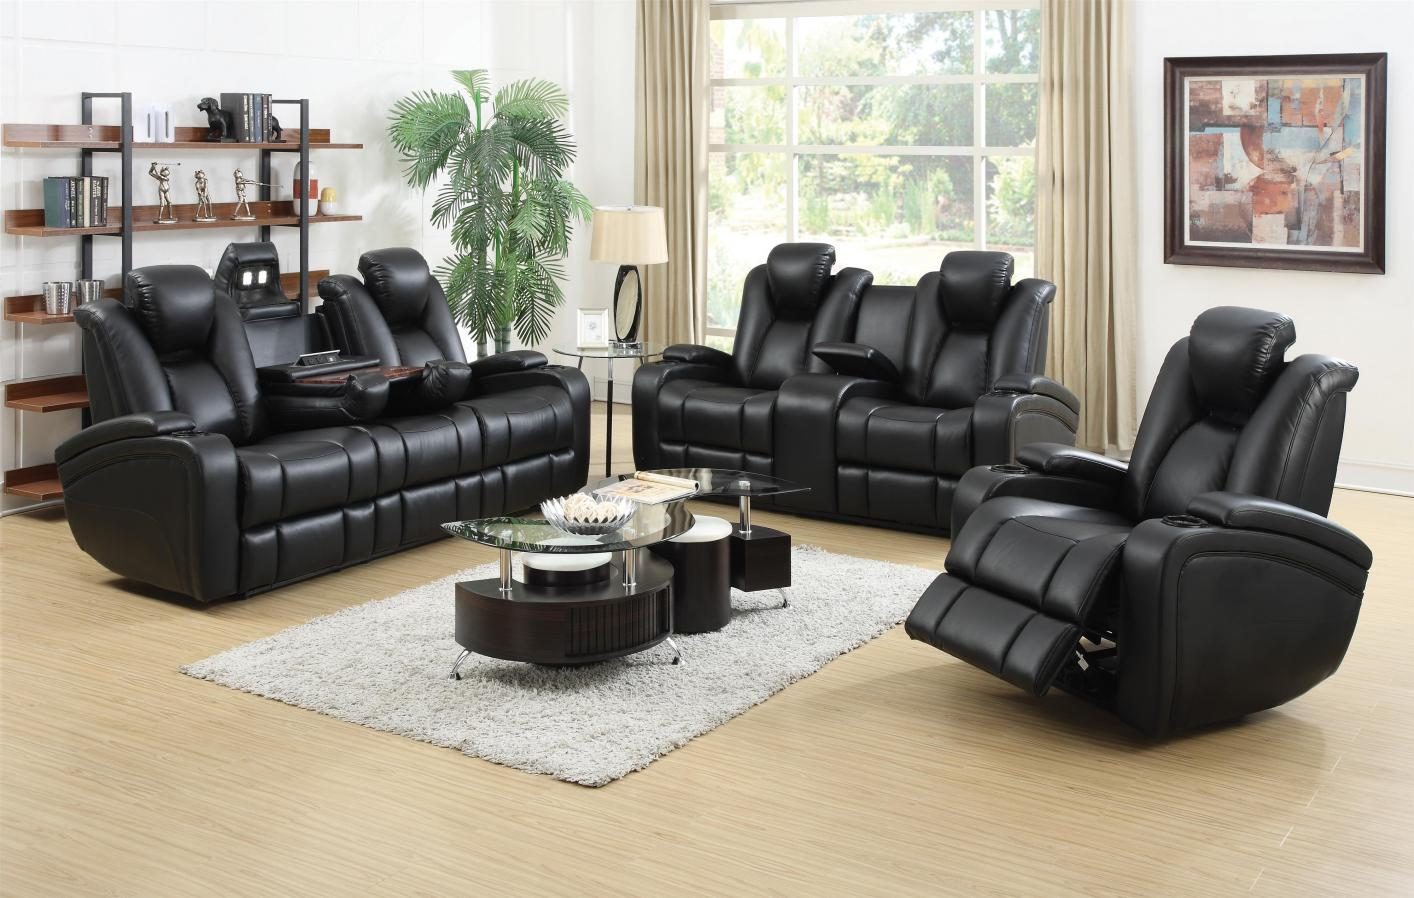 ... Black Leather Power Reclining Sofa and Loveseat Set & Black Leather Power Reclining Sofa and Loveseat Set - Steal-A-Sofa ... islam-shia.org